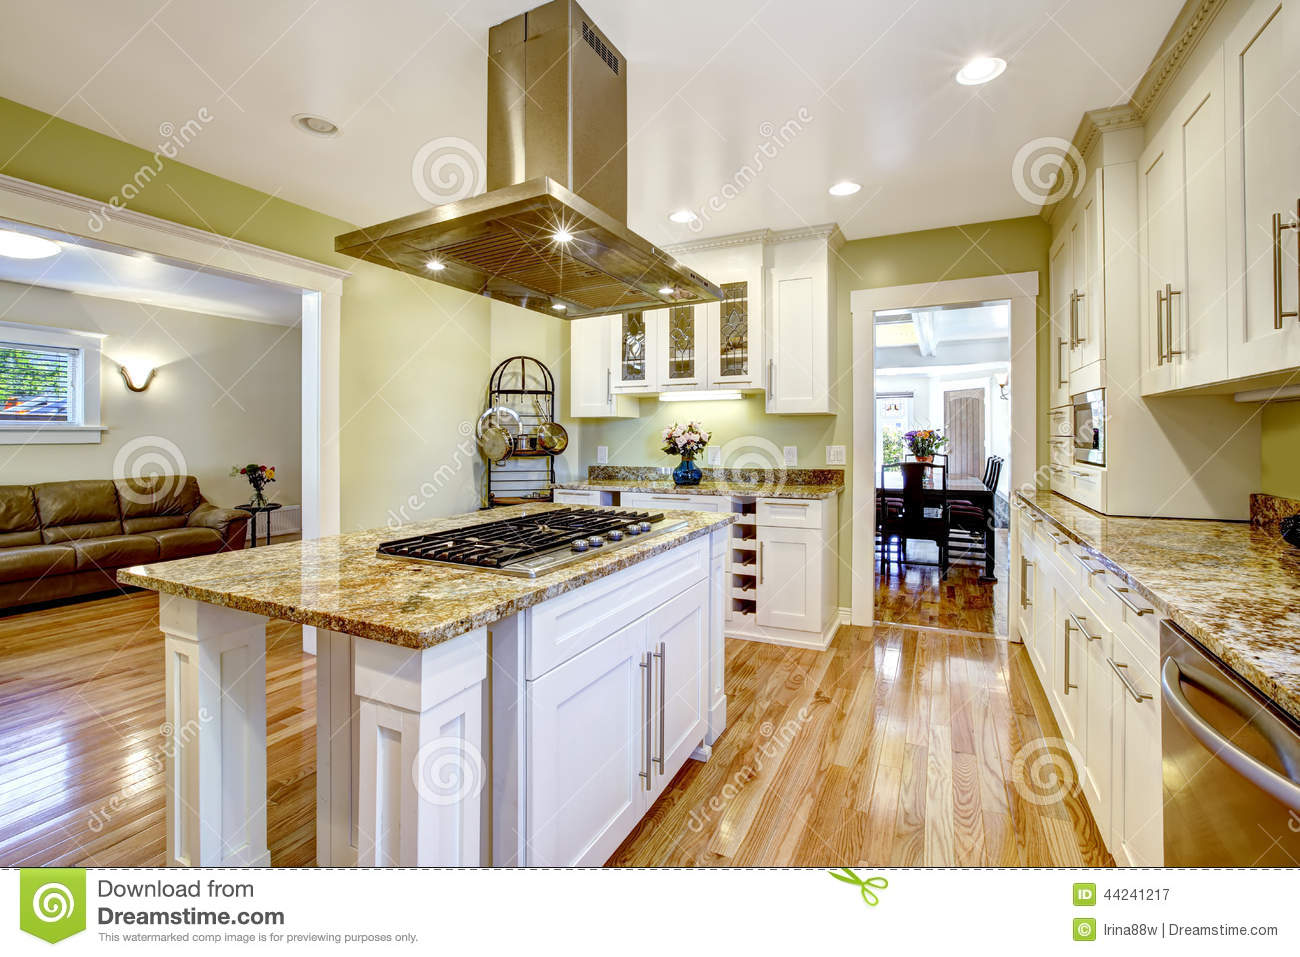 Kitchen Island Stove kitchen island with built-in stove, granite top and hood stock